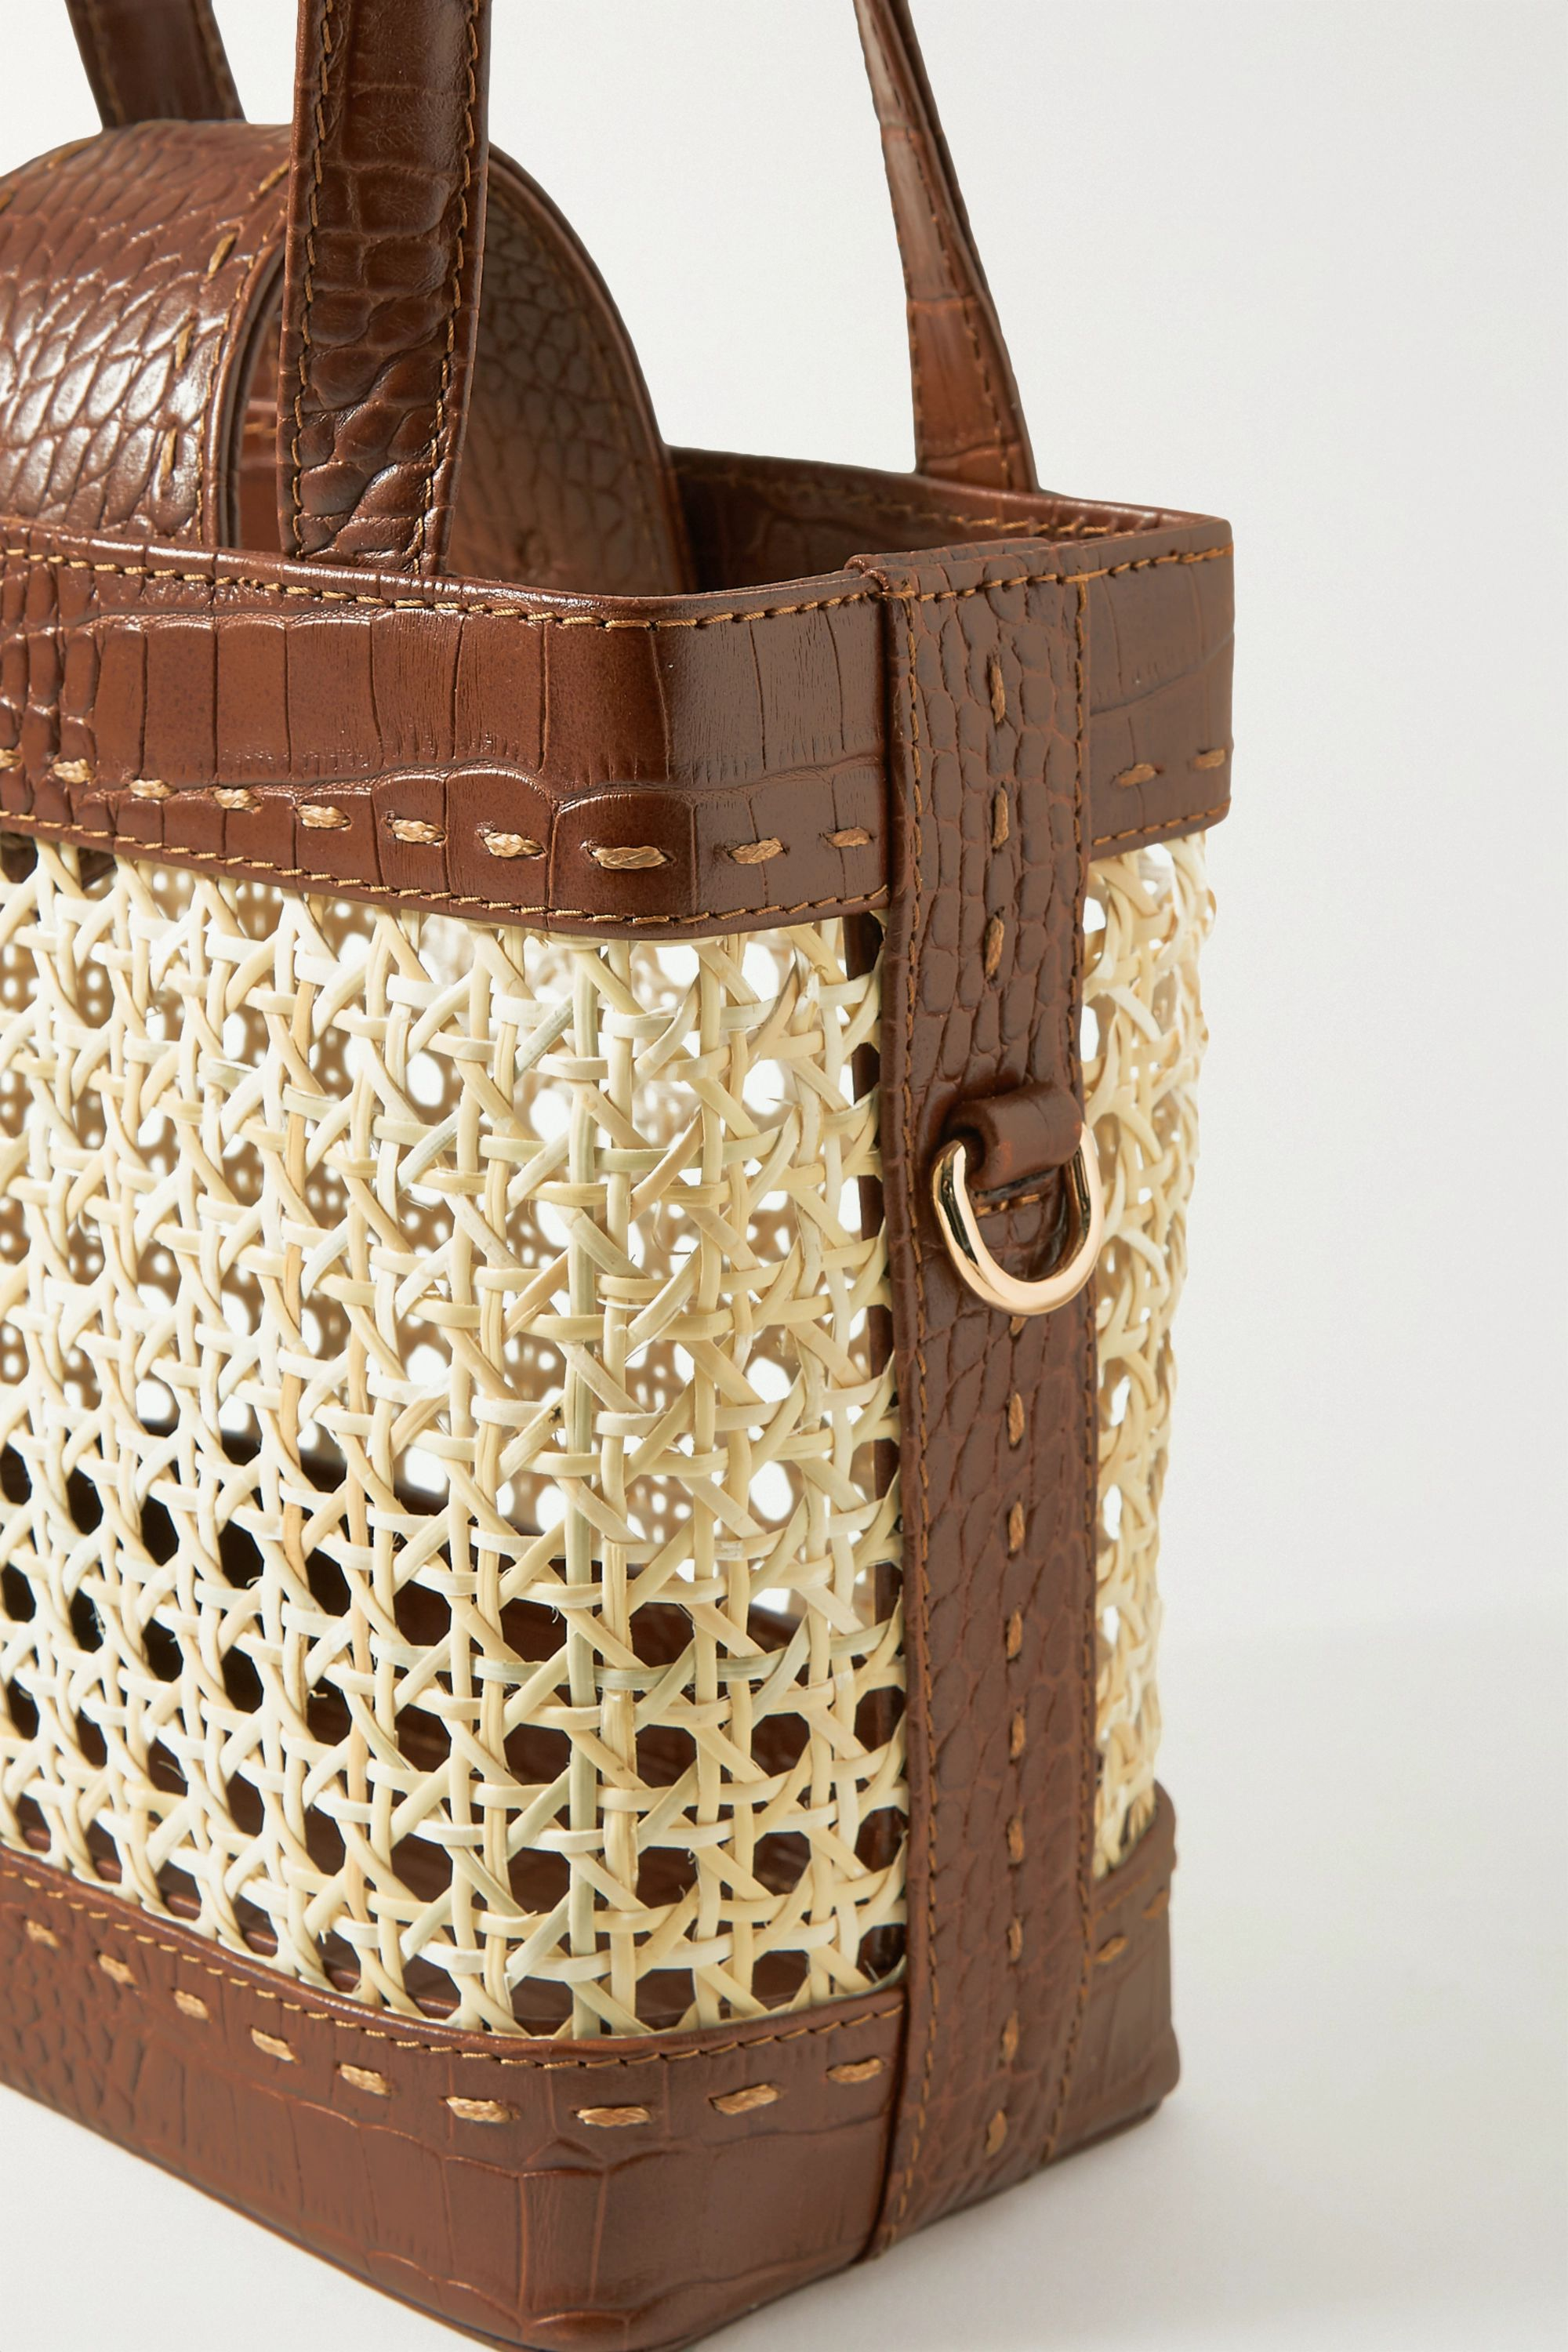 Mehry Mu Fey mini rattan and croc-effect leather tote